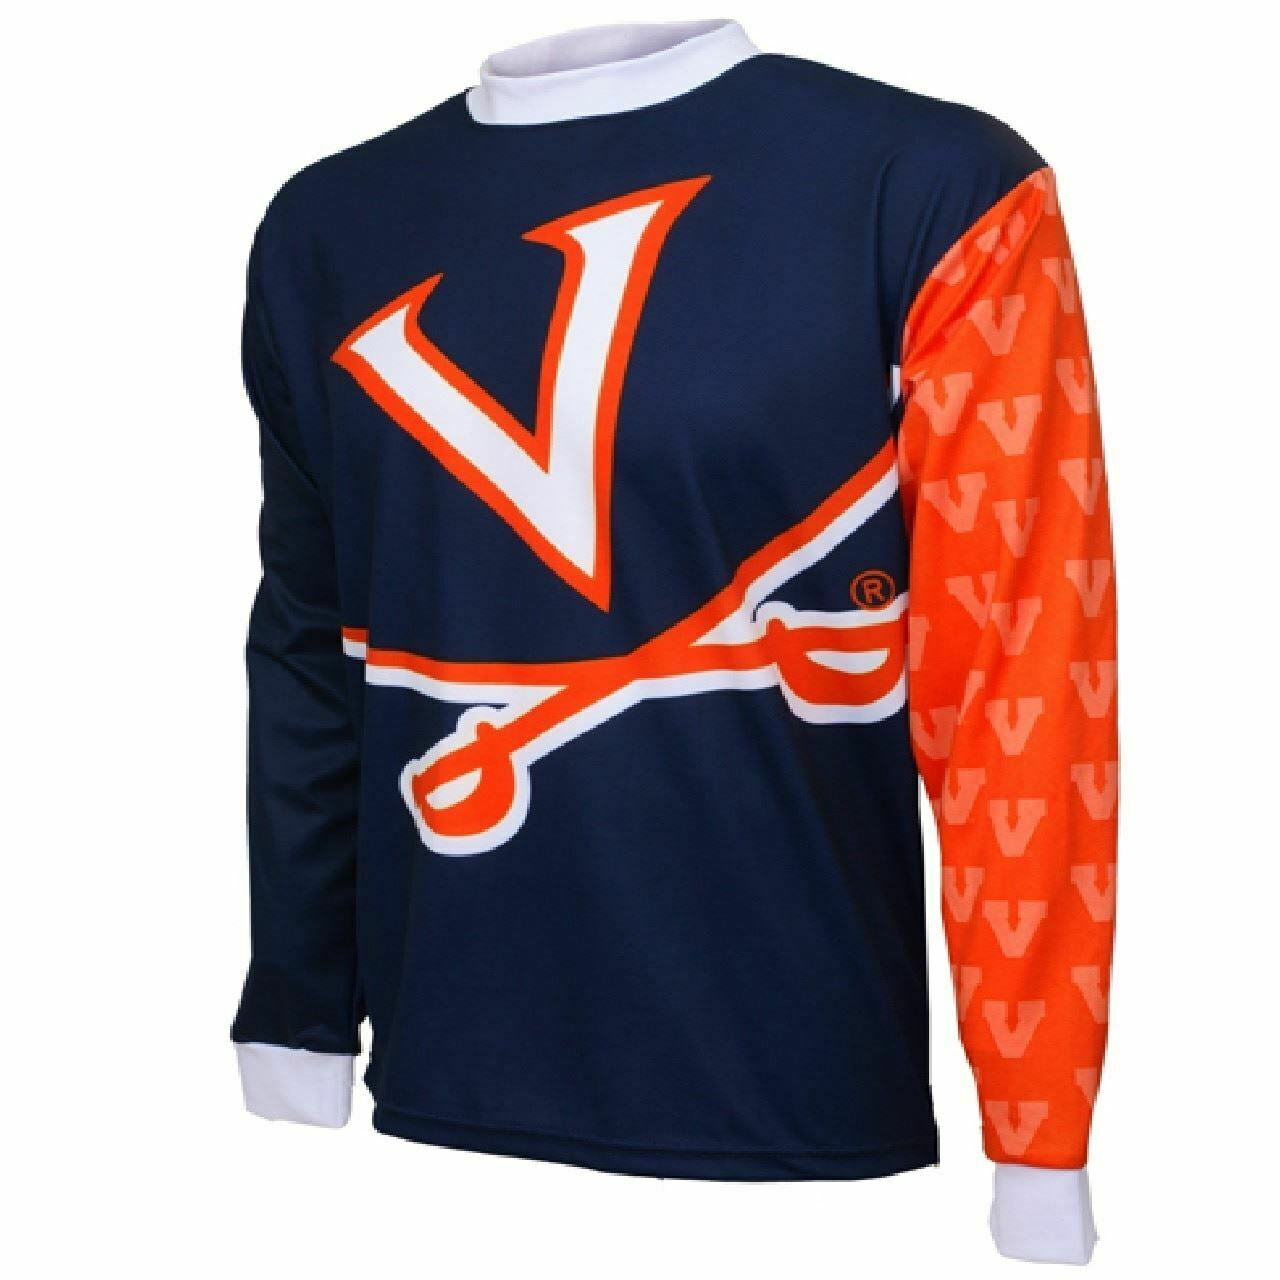 University of Virginia Cavaliers College LS Men's MTB Cycling Jersey   more order